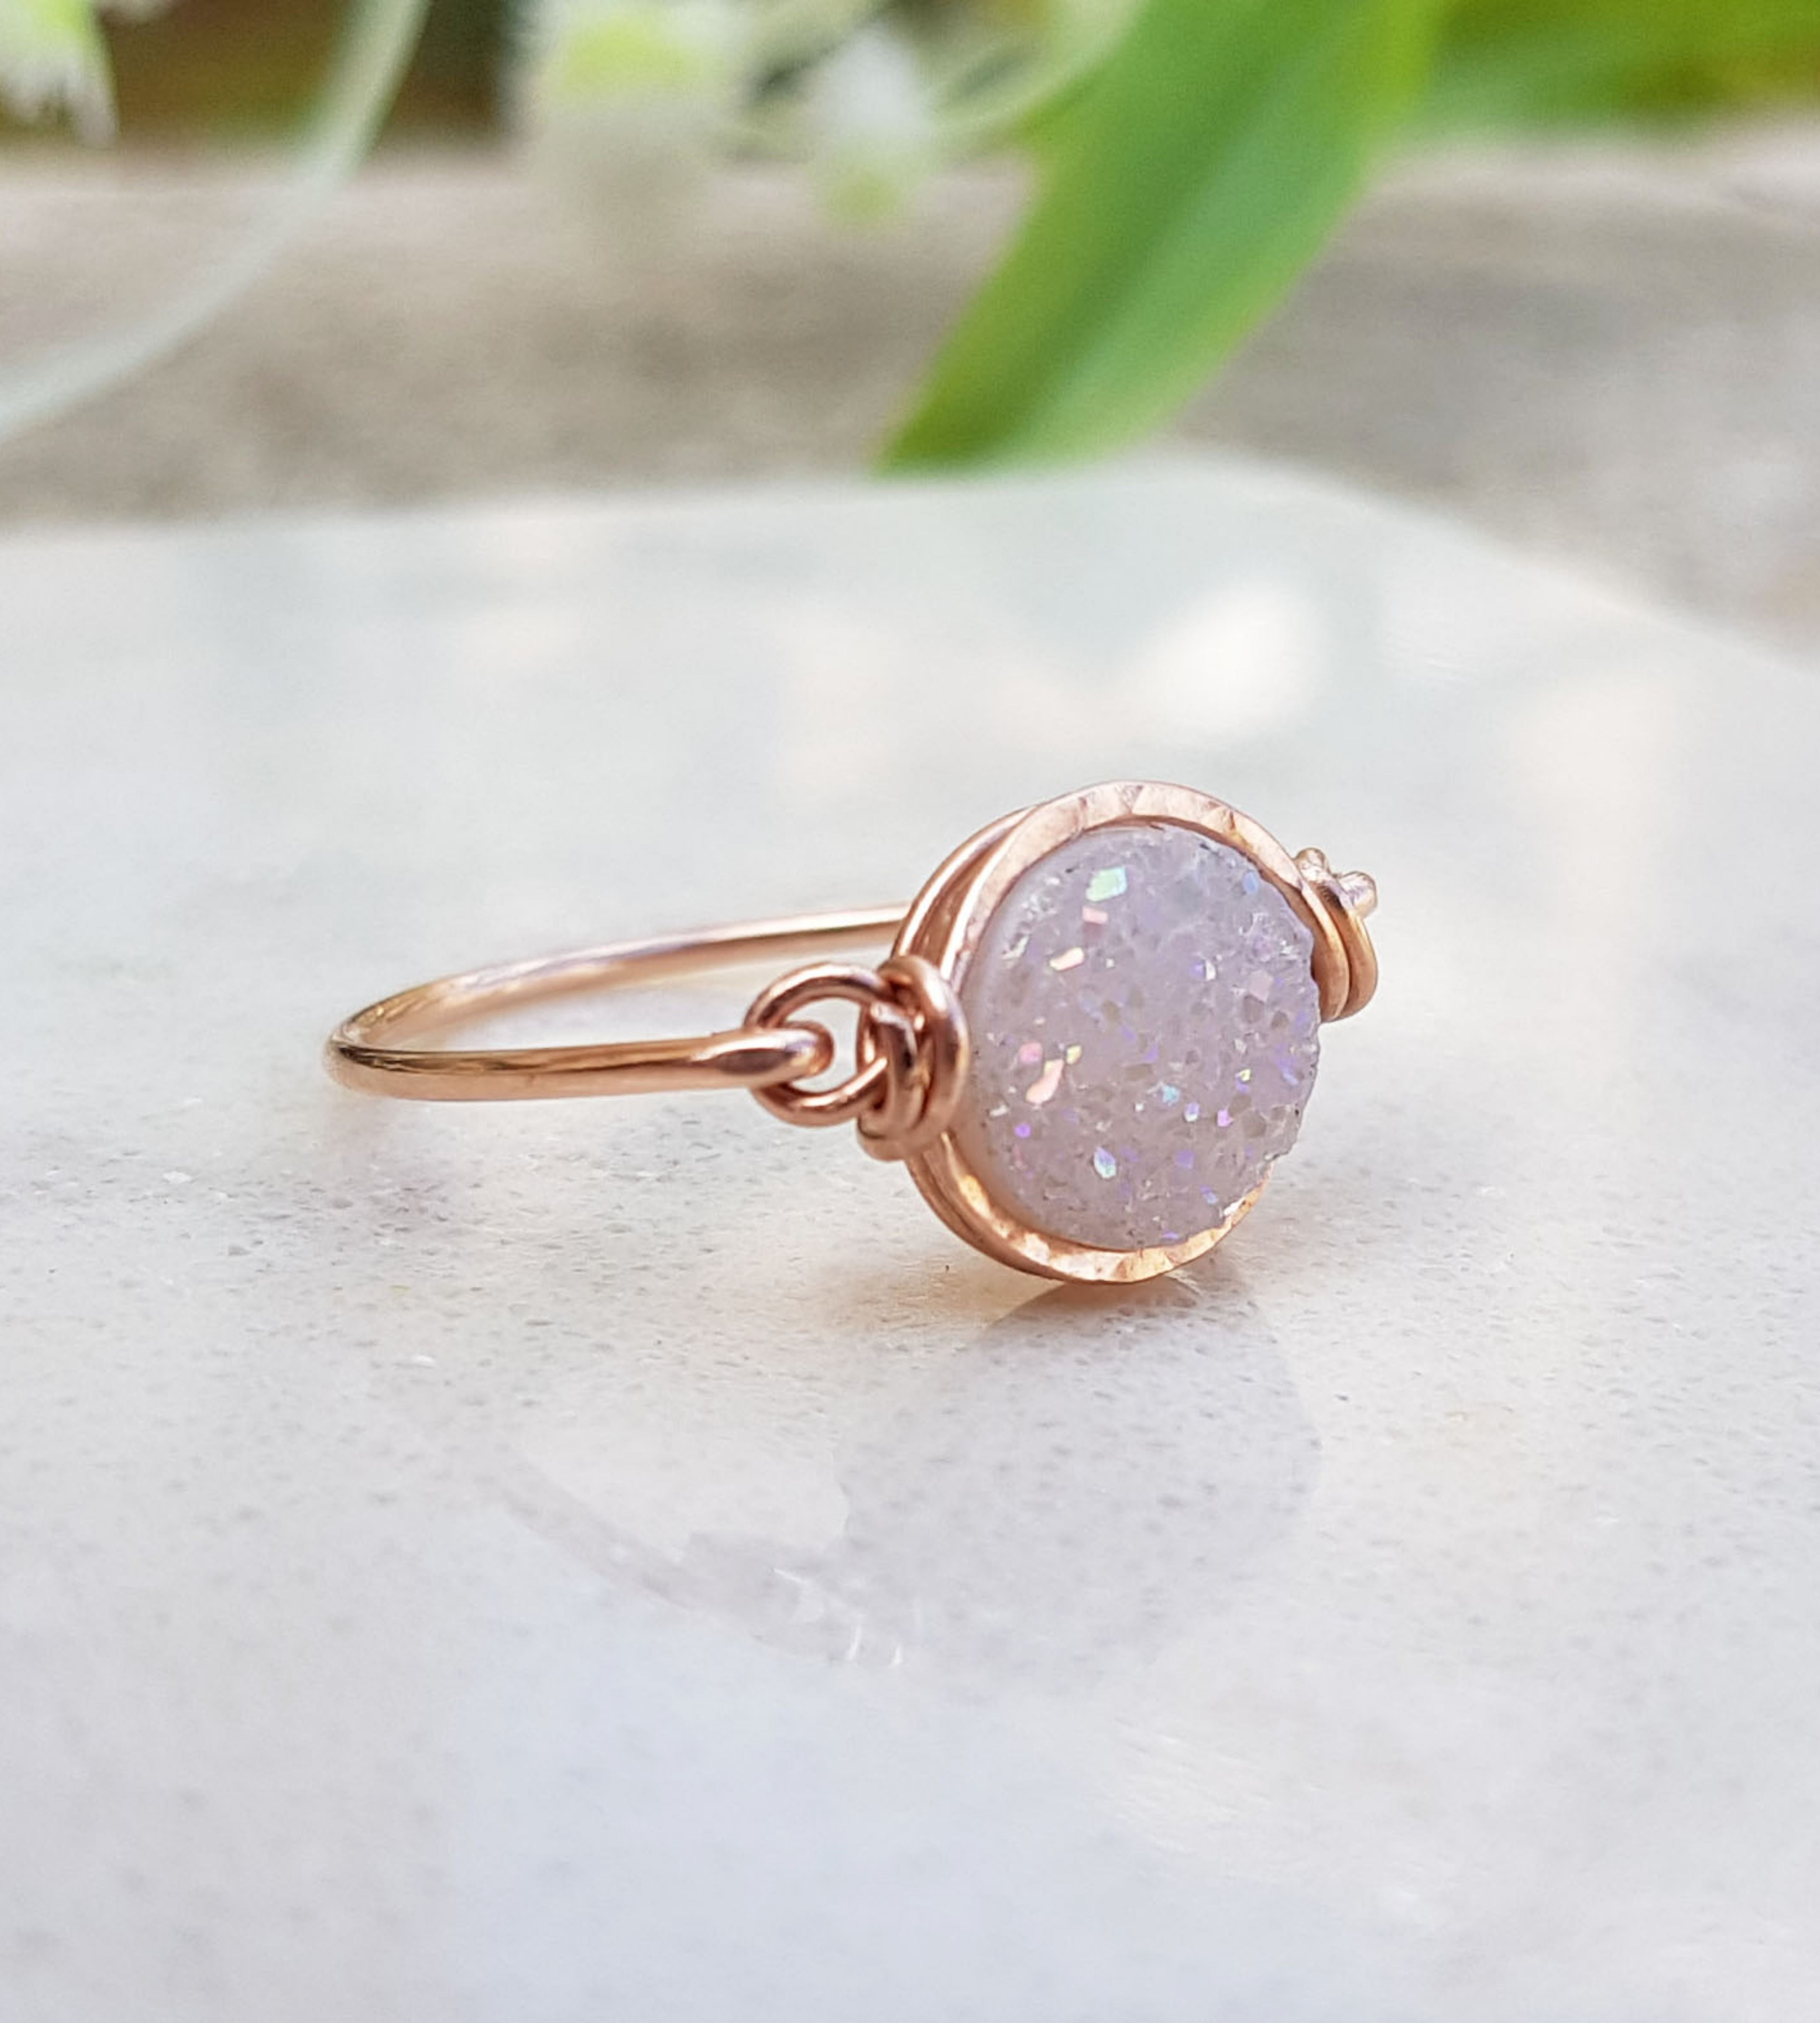 Double rose quartz stone ring,gemstone ring,gold ring,solid gold ring,rose gold ring,teardrop ring,stackable ring